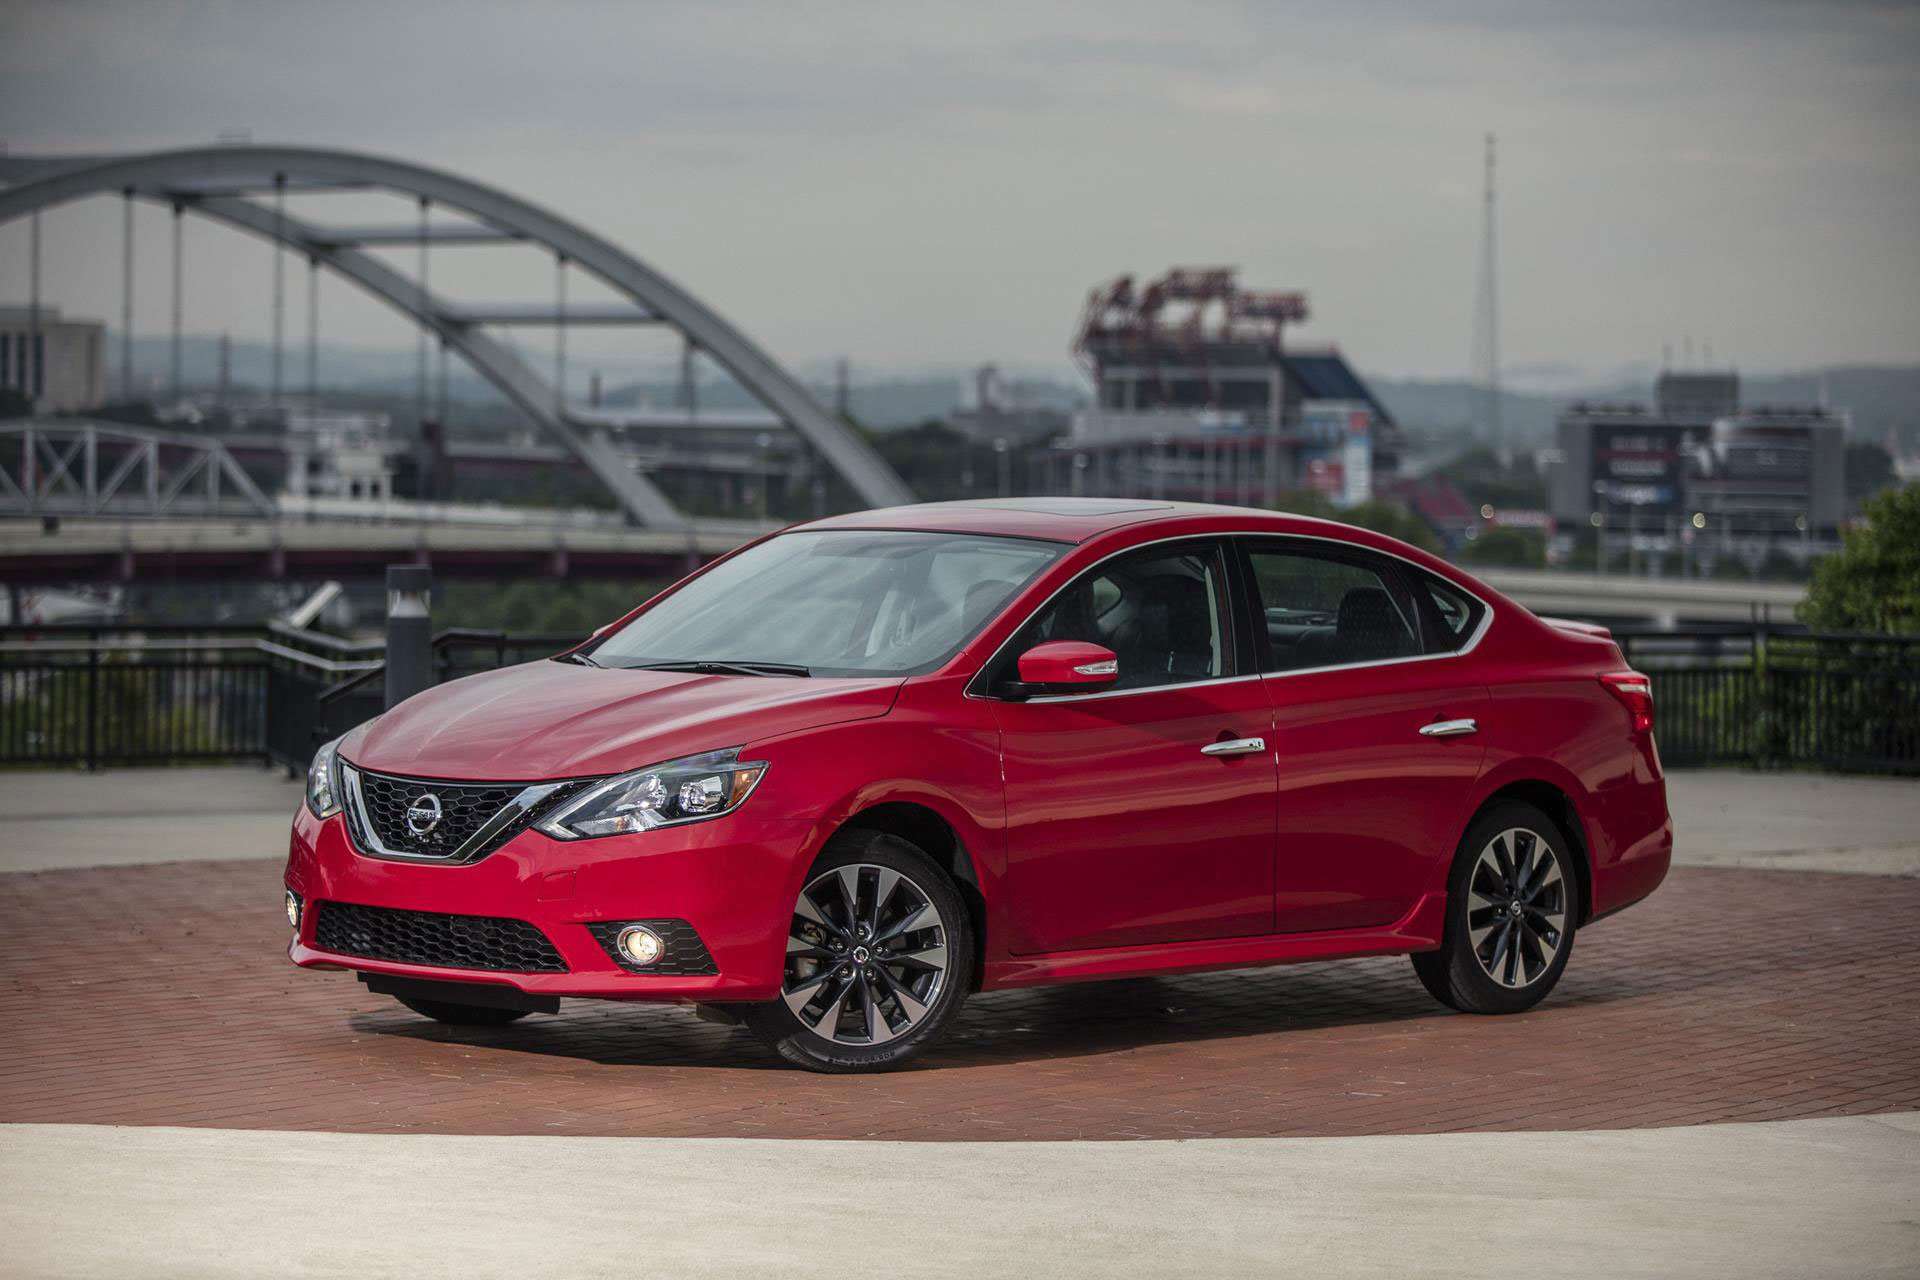 New 2019 Nissan Sentra SR SR for sale $20,690 at M and V Leasing in Brooklyn NY 11223 1